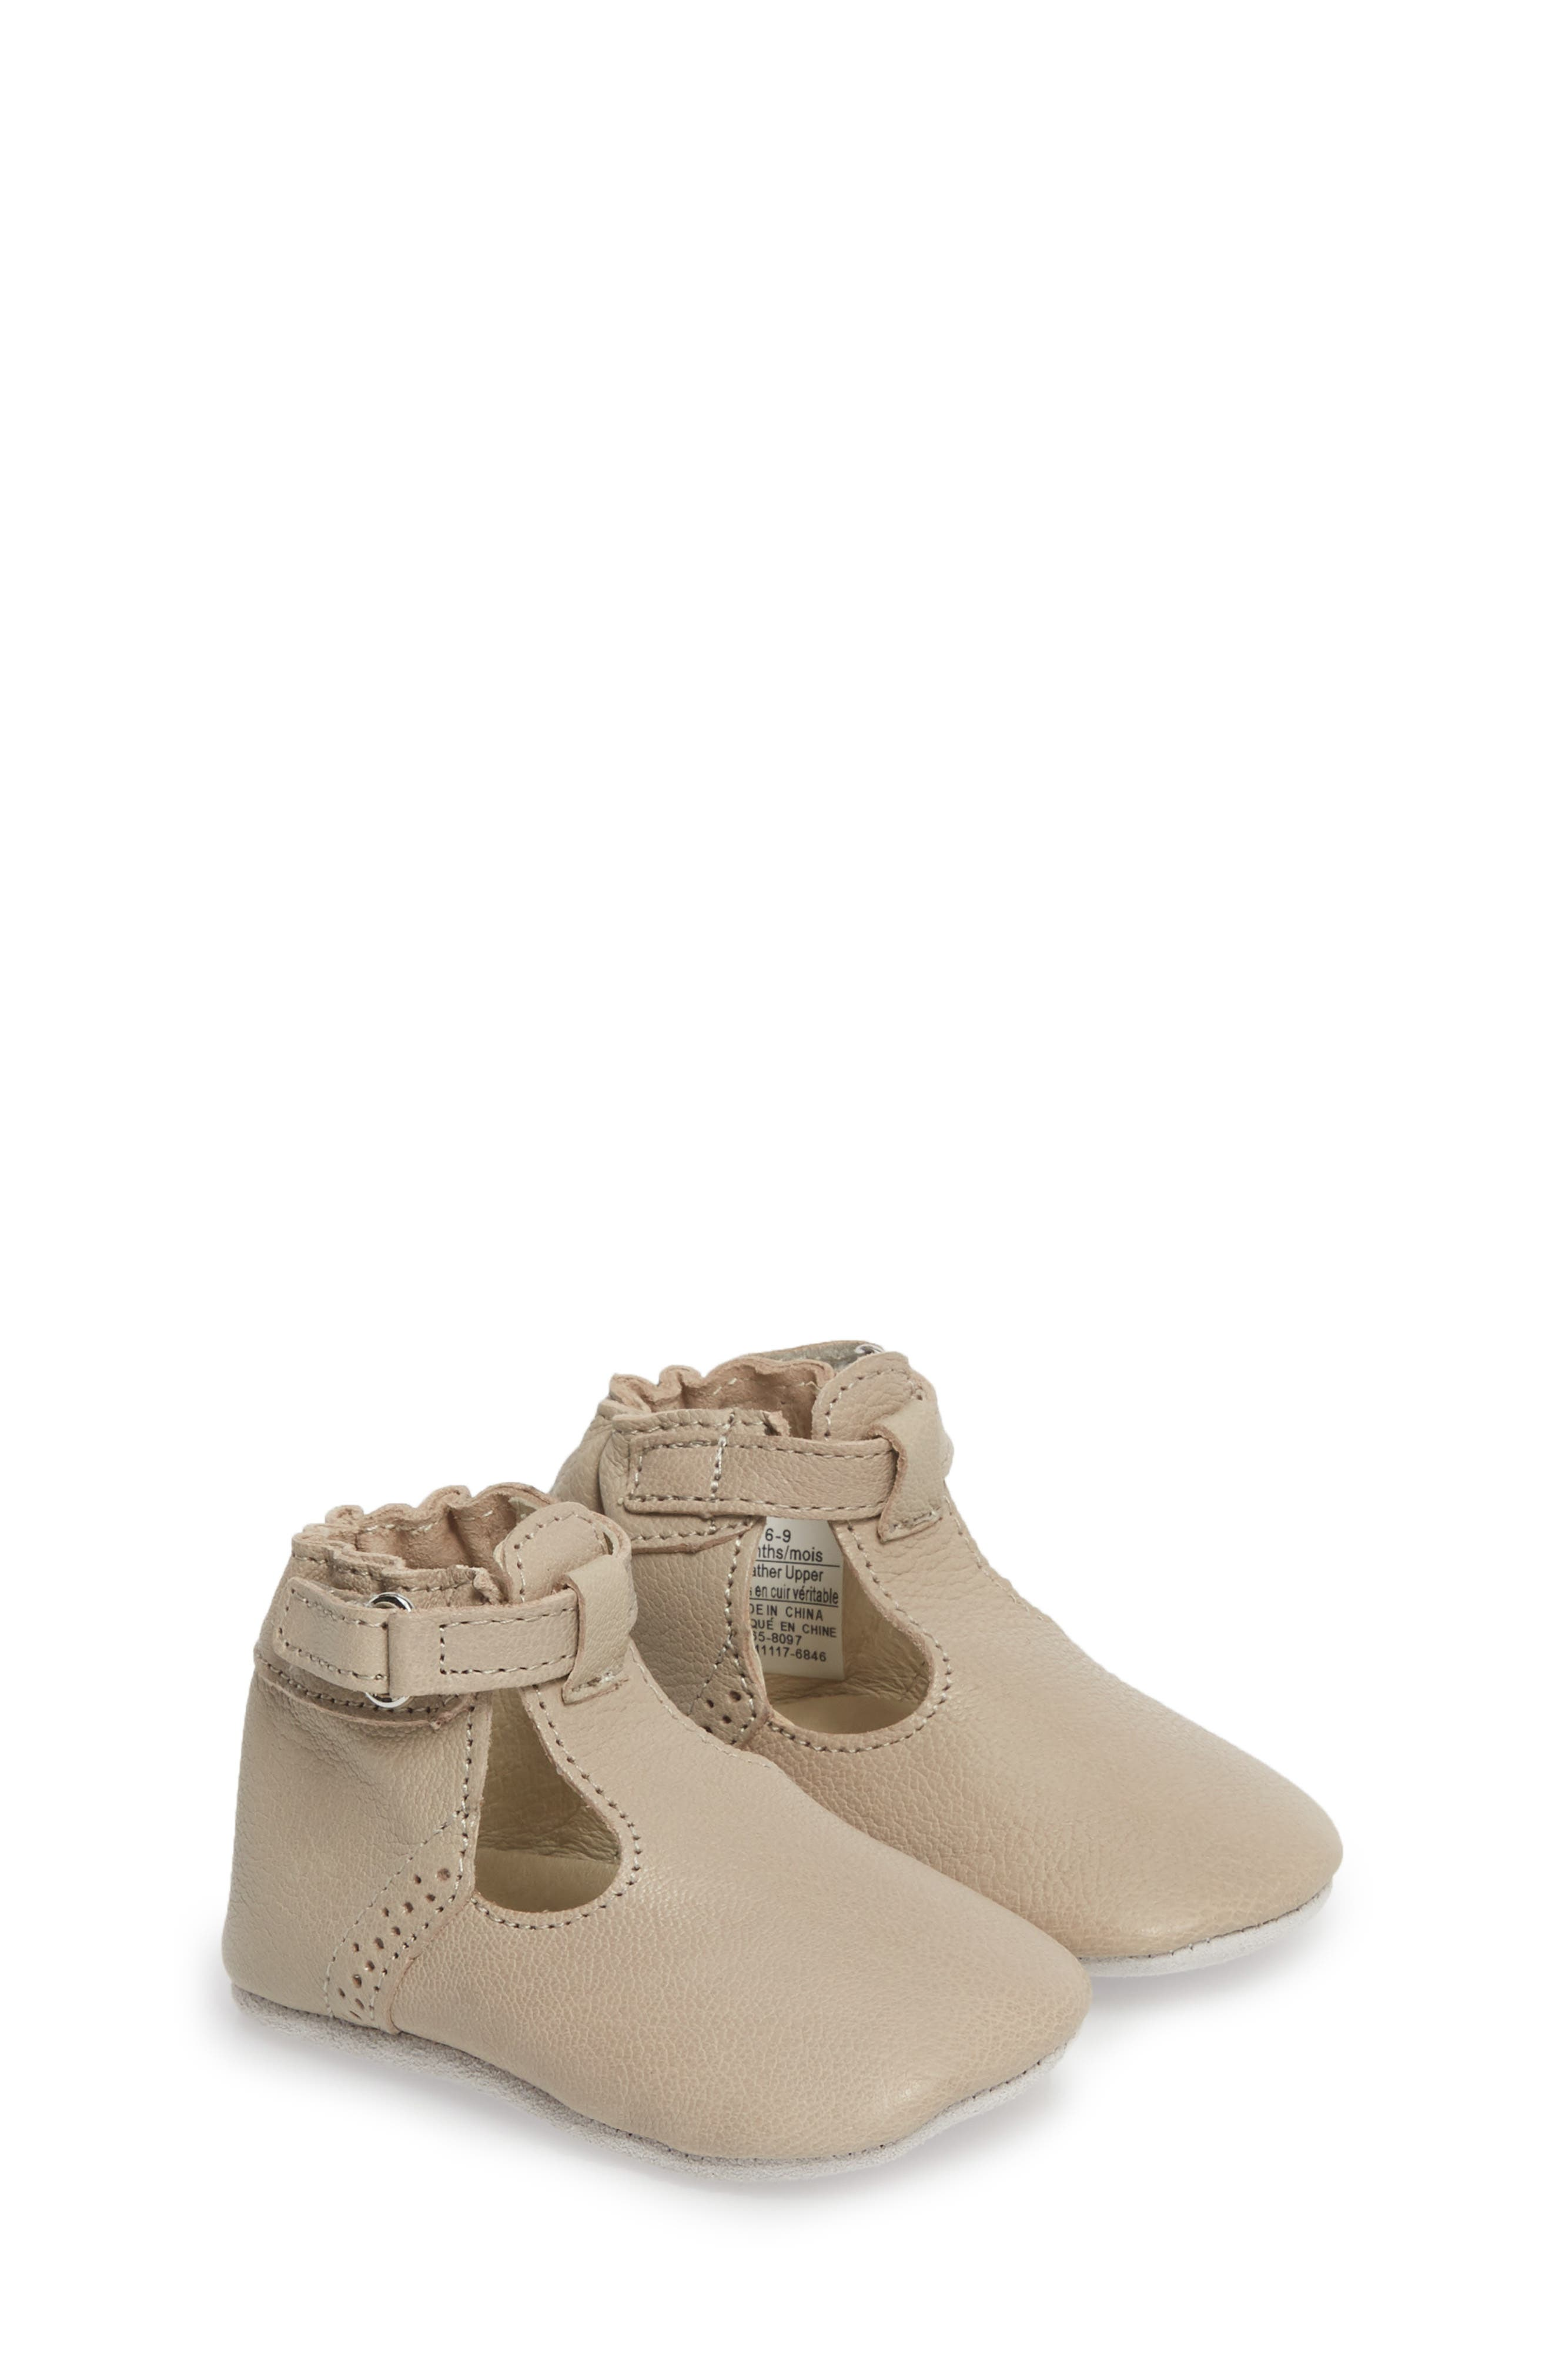 ROBEEZ<SUP>®</SUP> Penny T-Strap Mary Jane Crib Shoe, Main, color, TAUPE